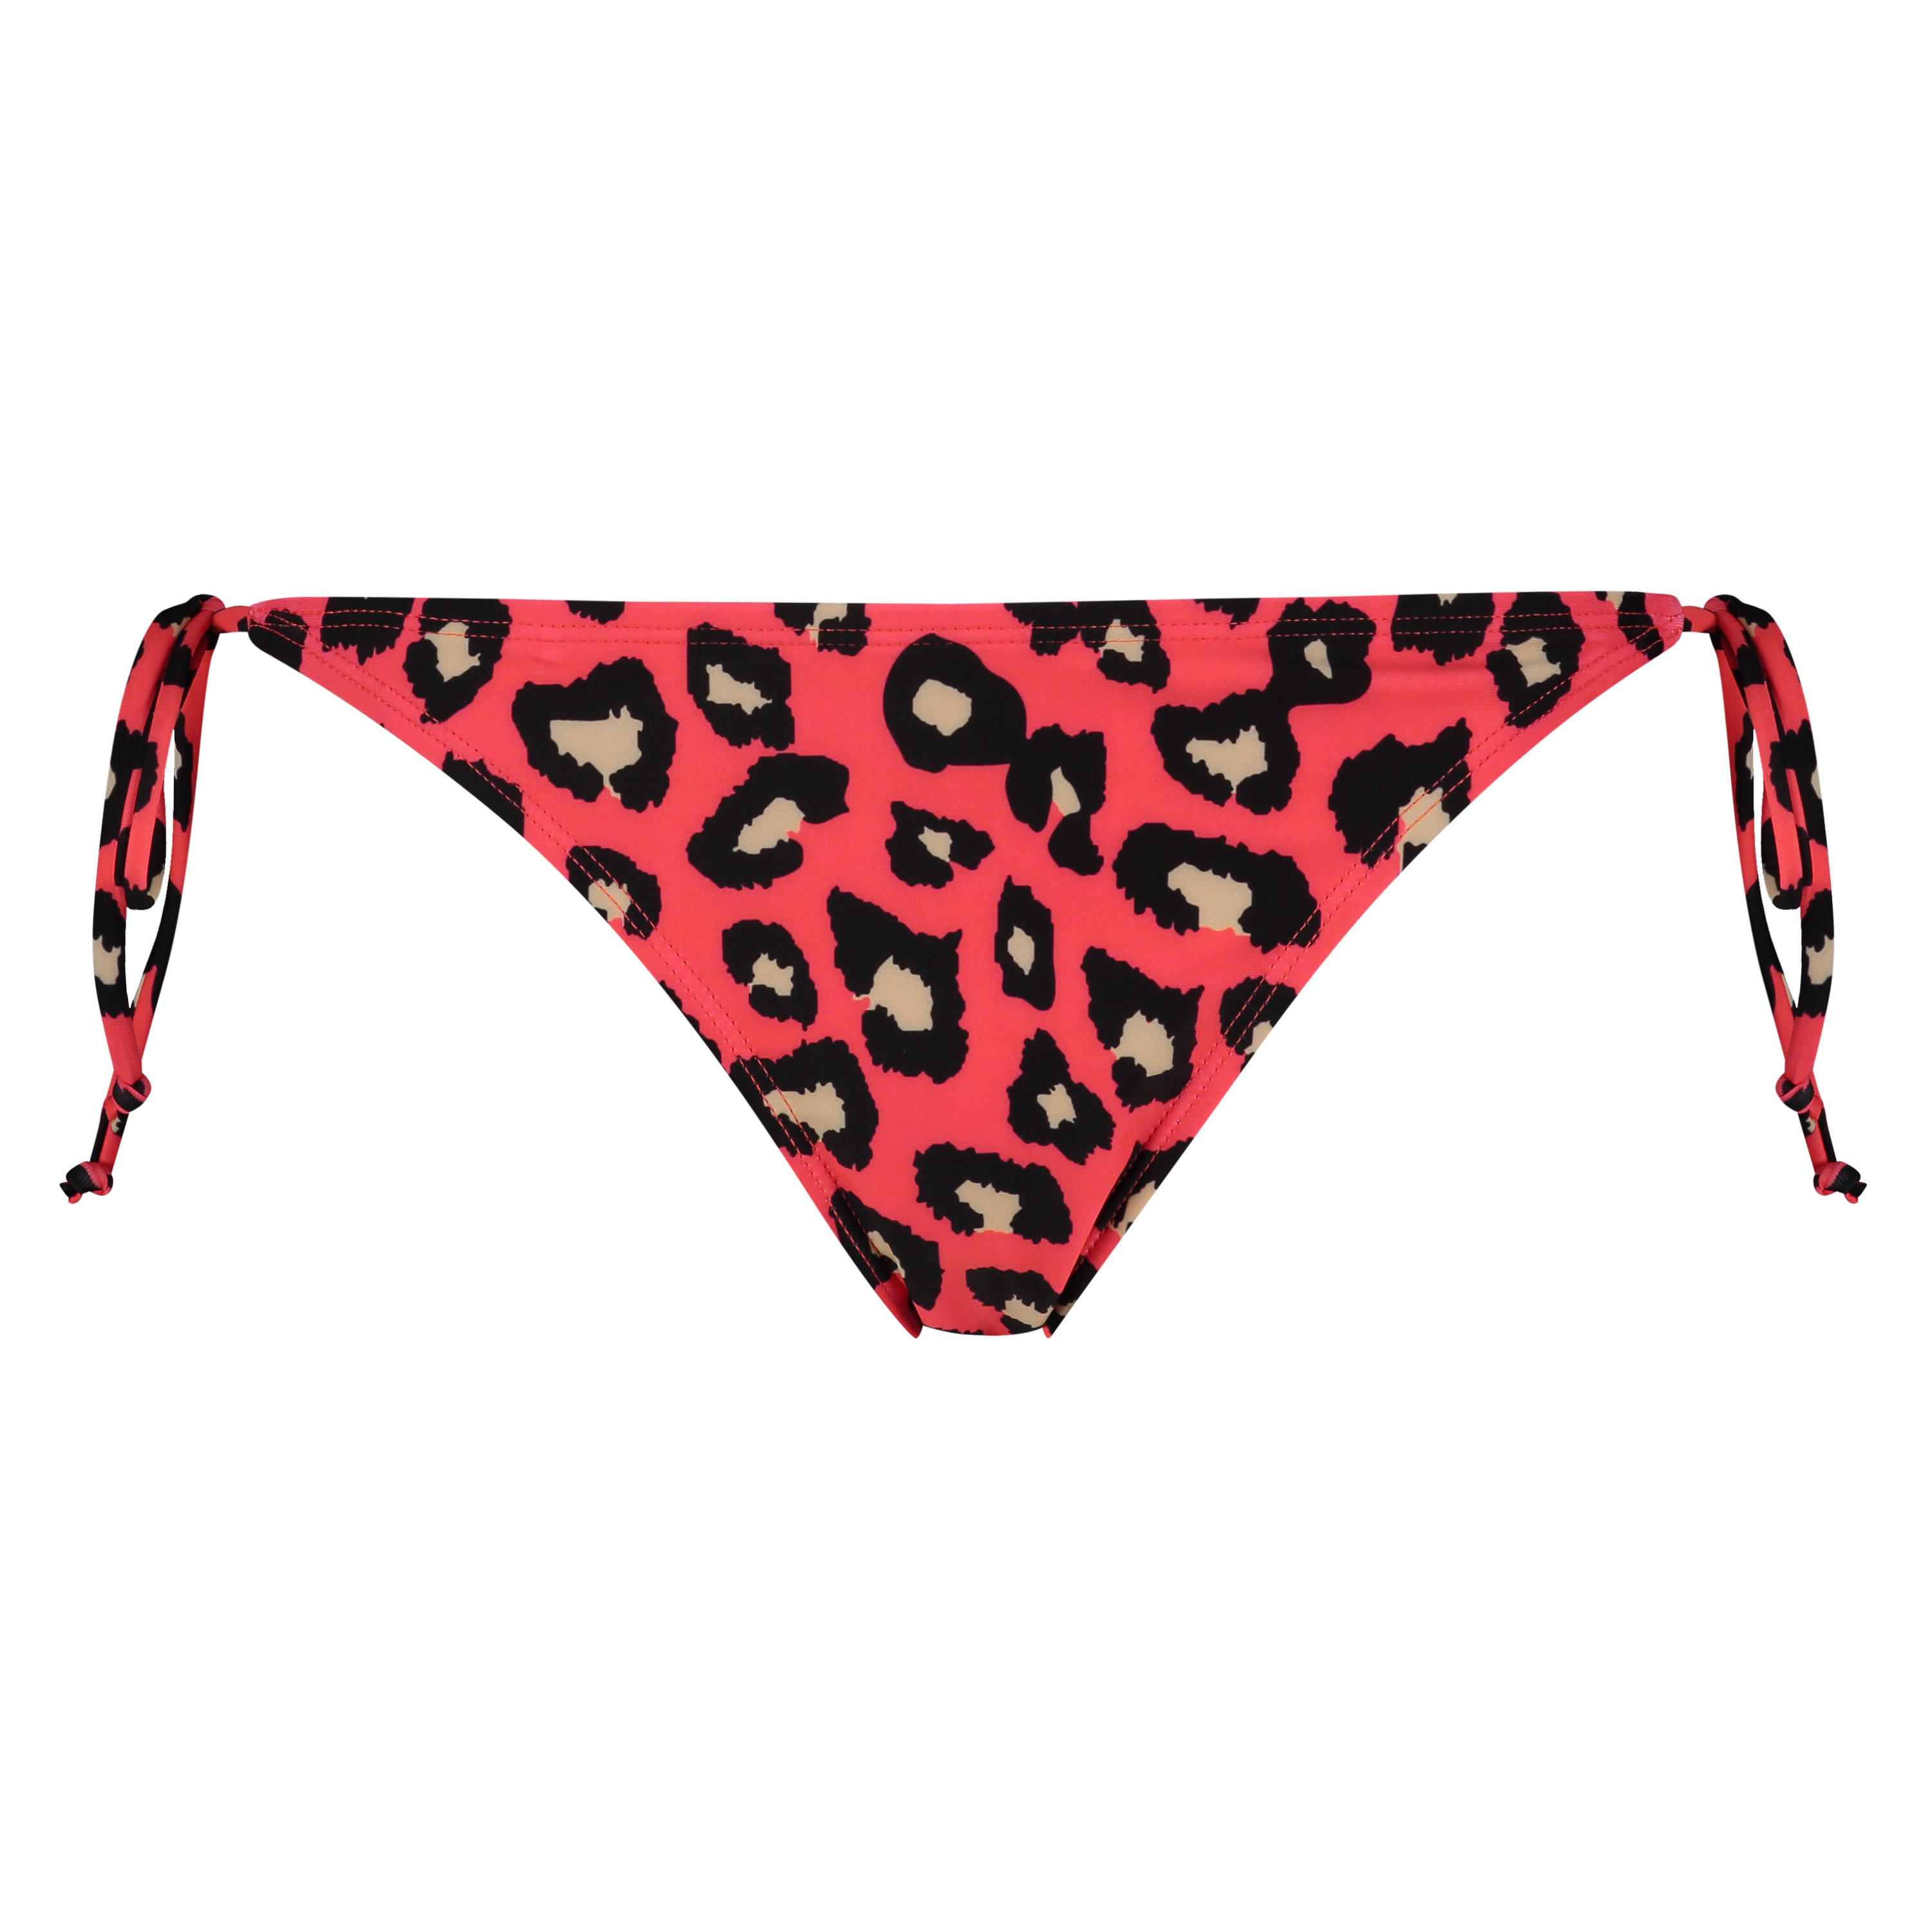 Tanga bikinibroekje Rebel Cat, Oranje, main